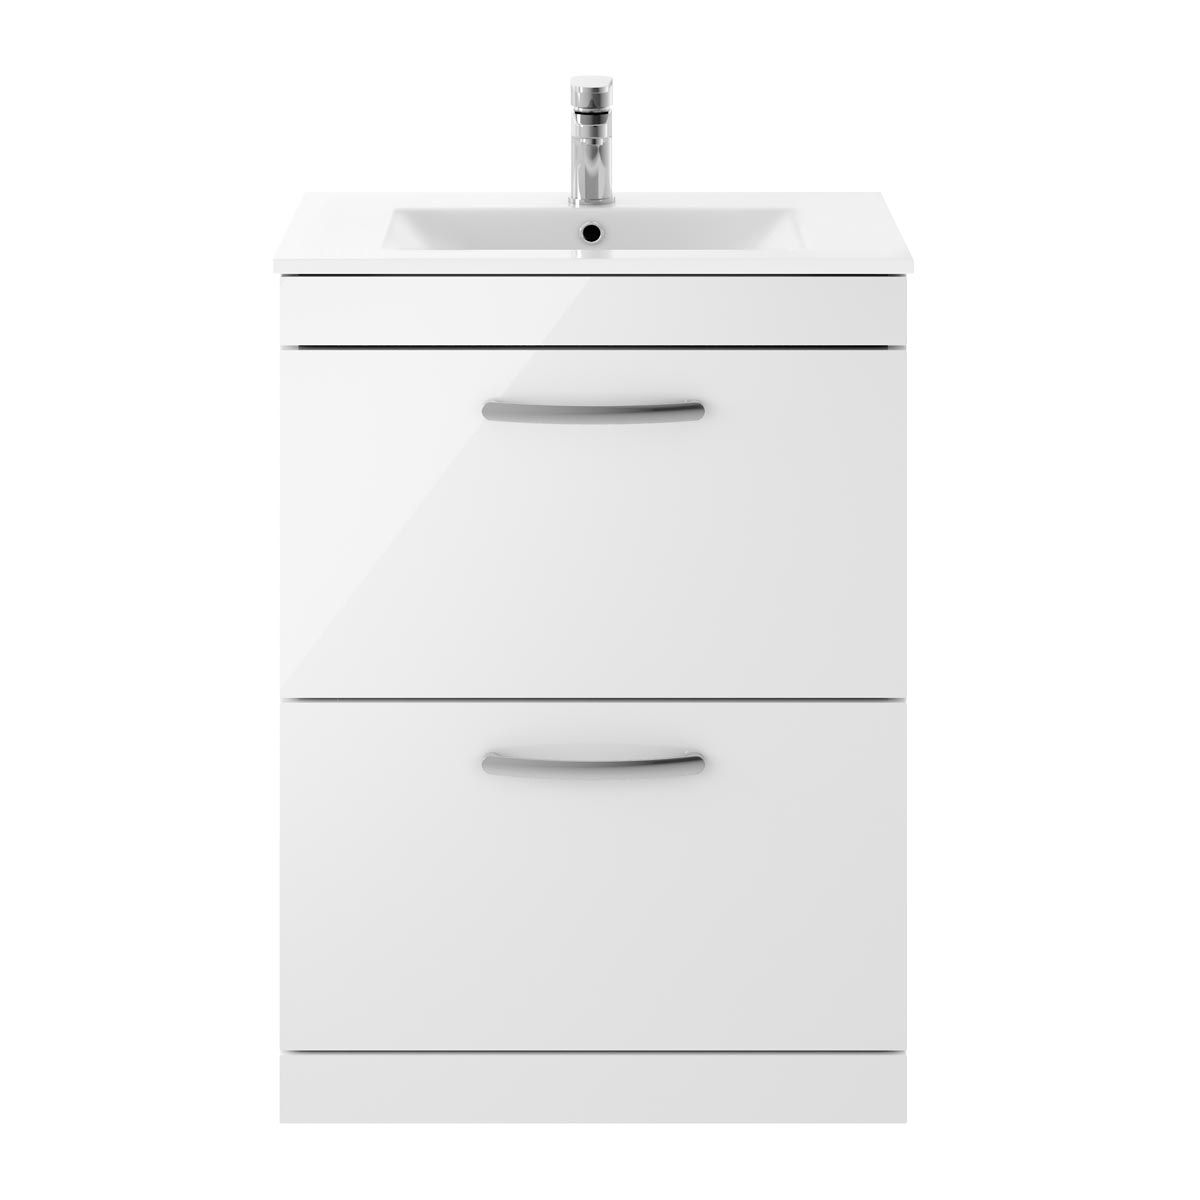 Nuie Athena Gloss White 2 Drawer Floor Standing Vanity Unit with 18mm Profile Basin 600mm